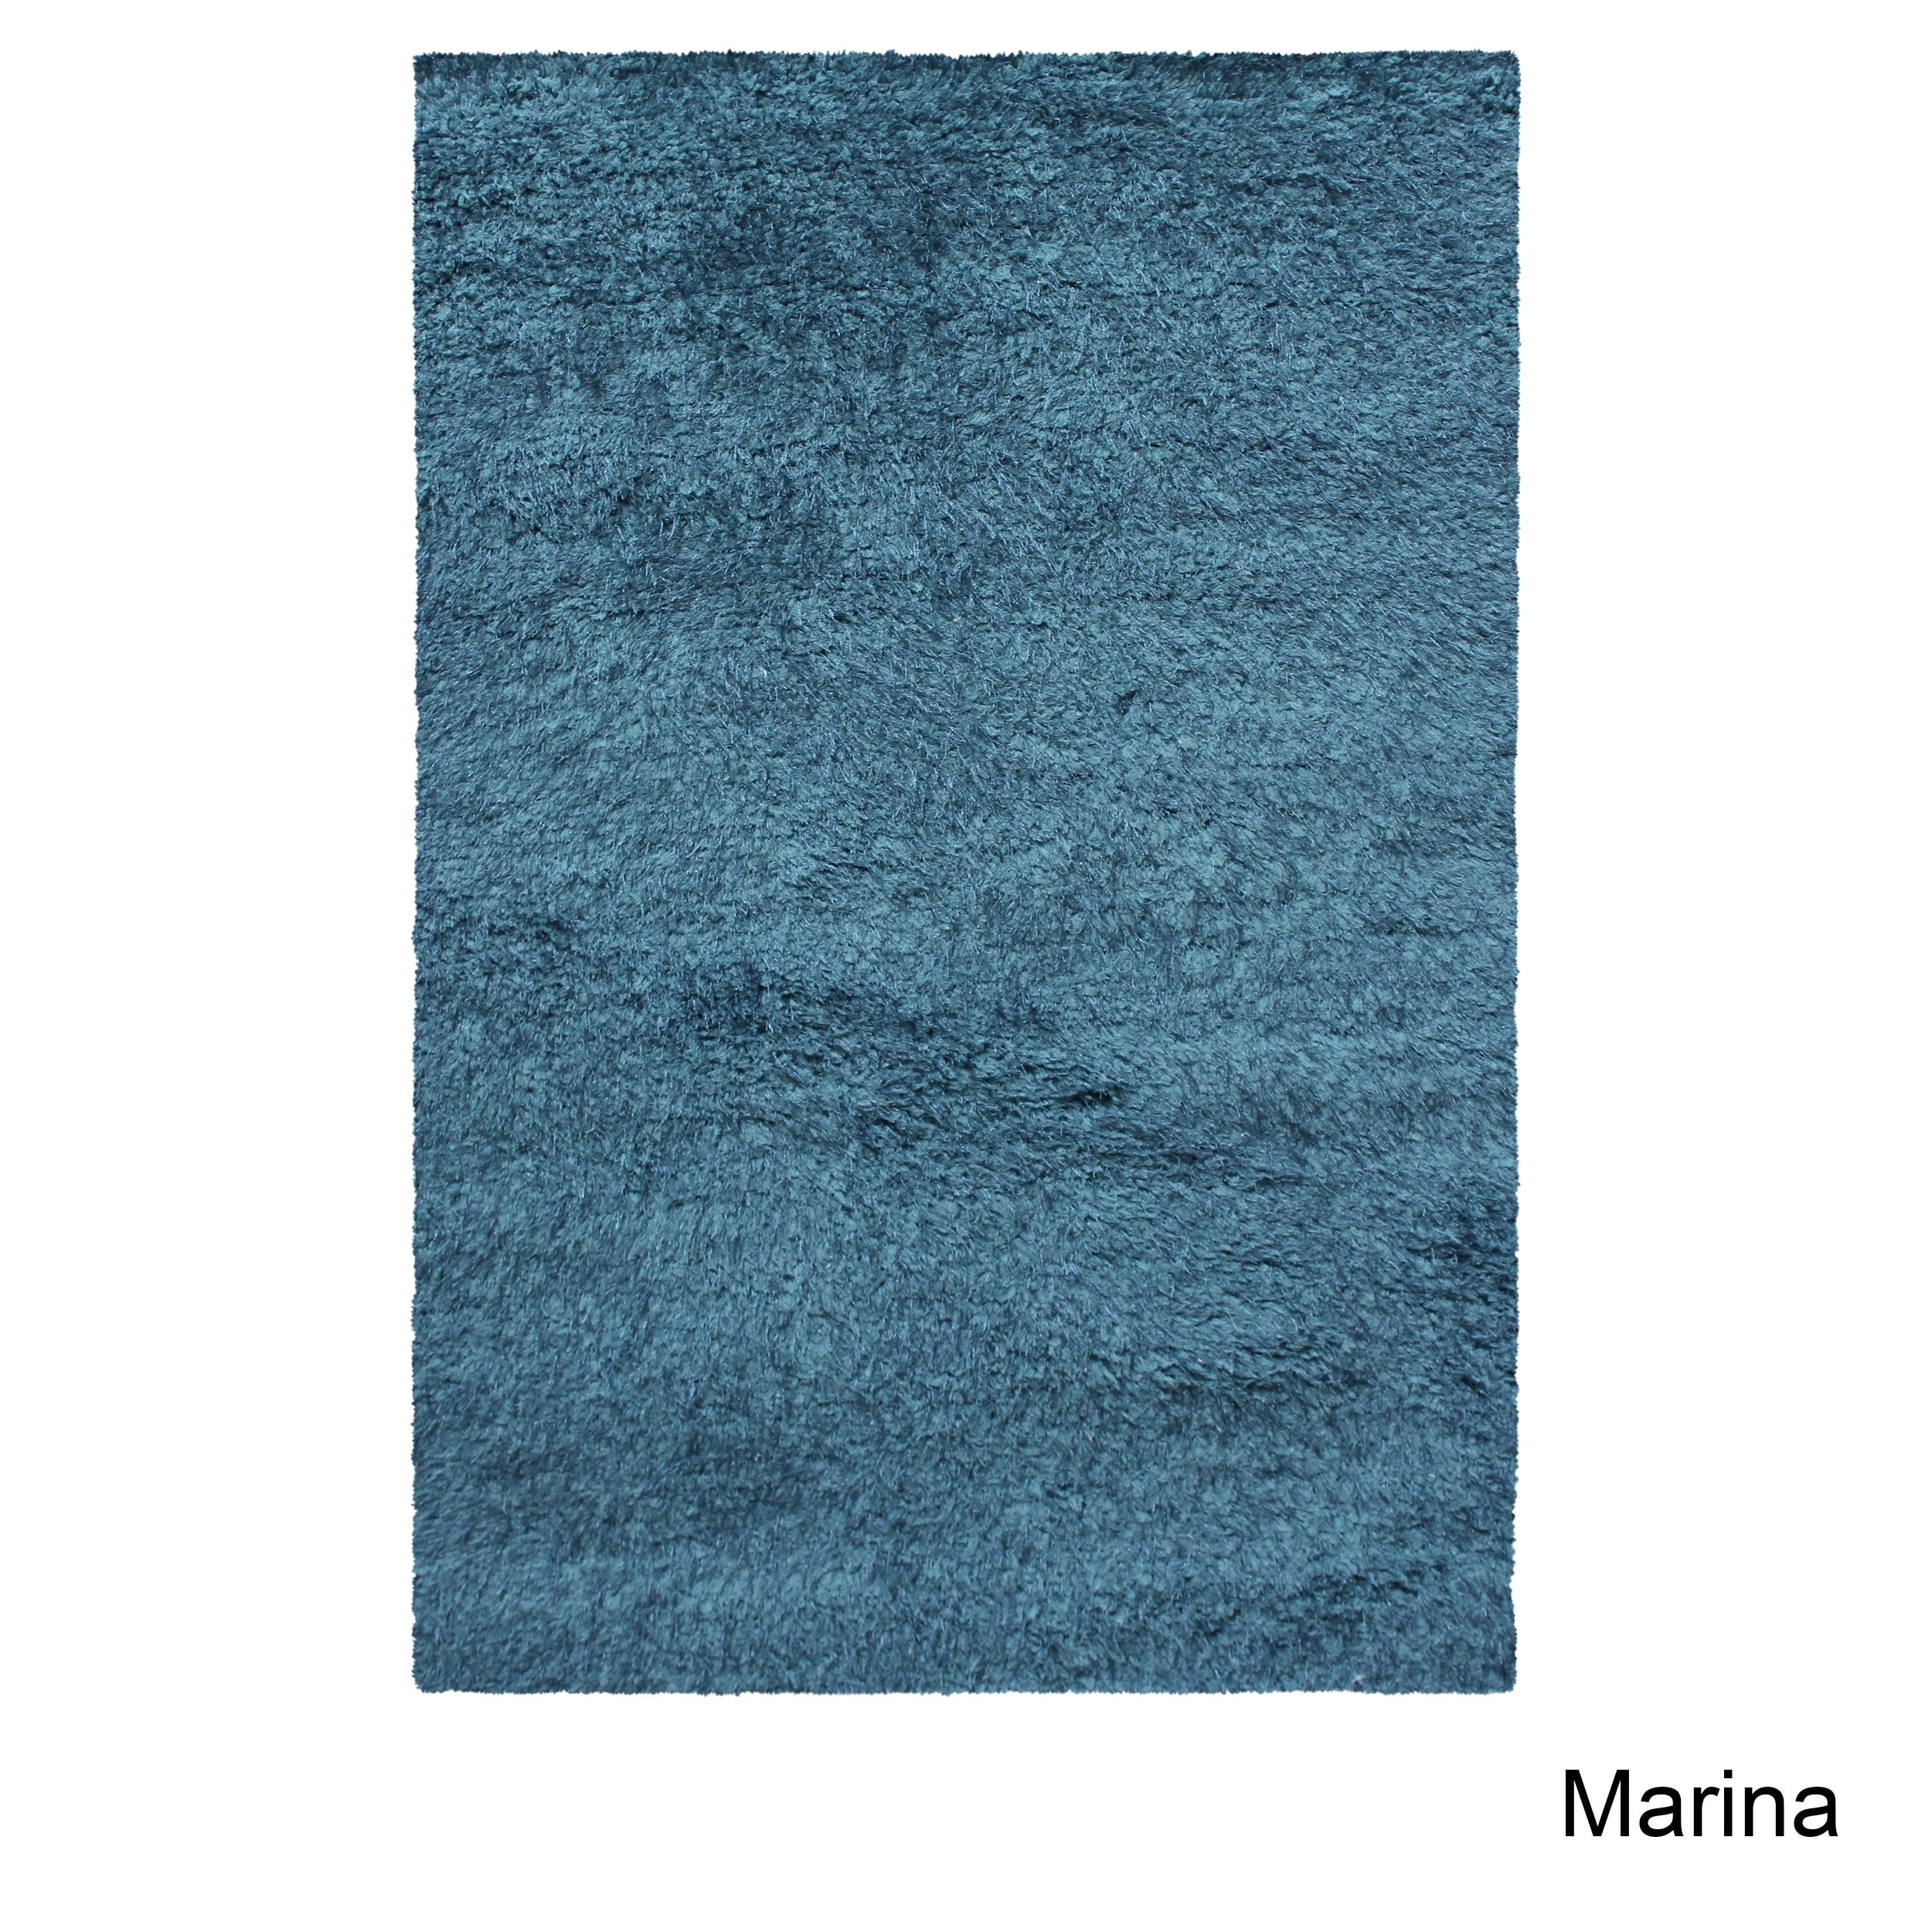 Blue 4 X 6 Area Rugs Online At Our Best Deals